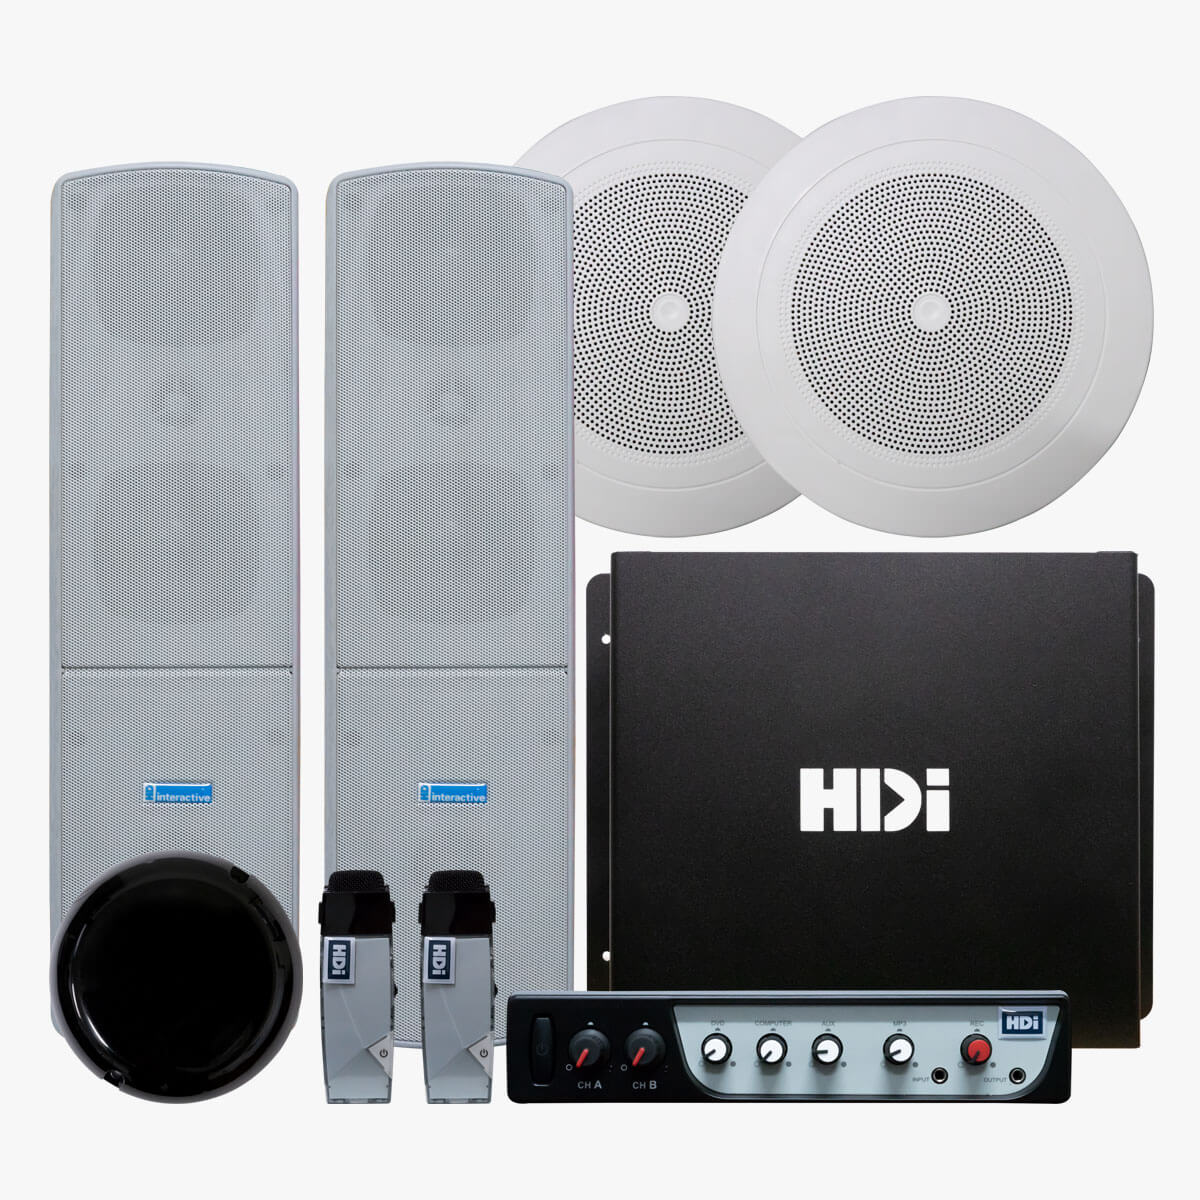 Hdi Home Design Ideas: Hearing Augmentation System 3